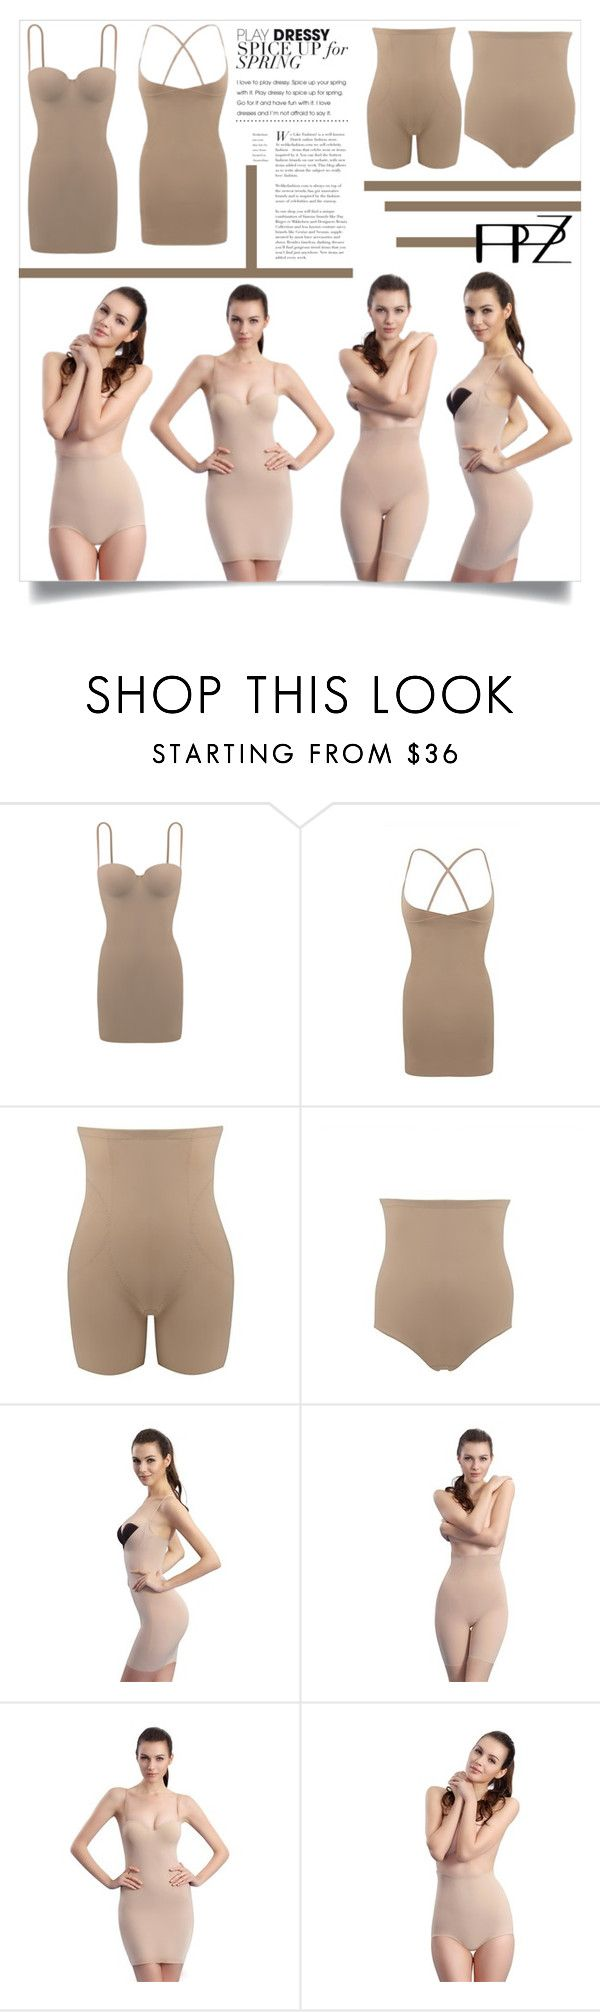 """PPZ SHAPEWEAR COLLECTIONS"" by ppz-brand ❤ liked on Polyvore"